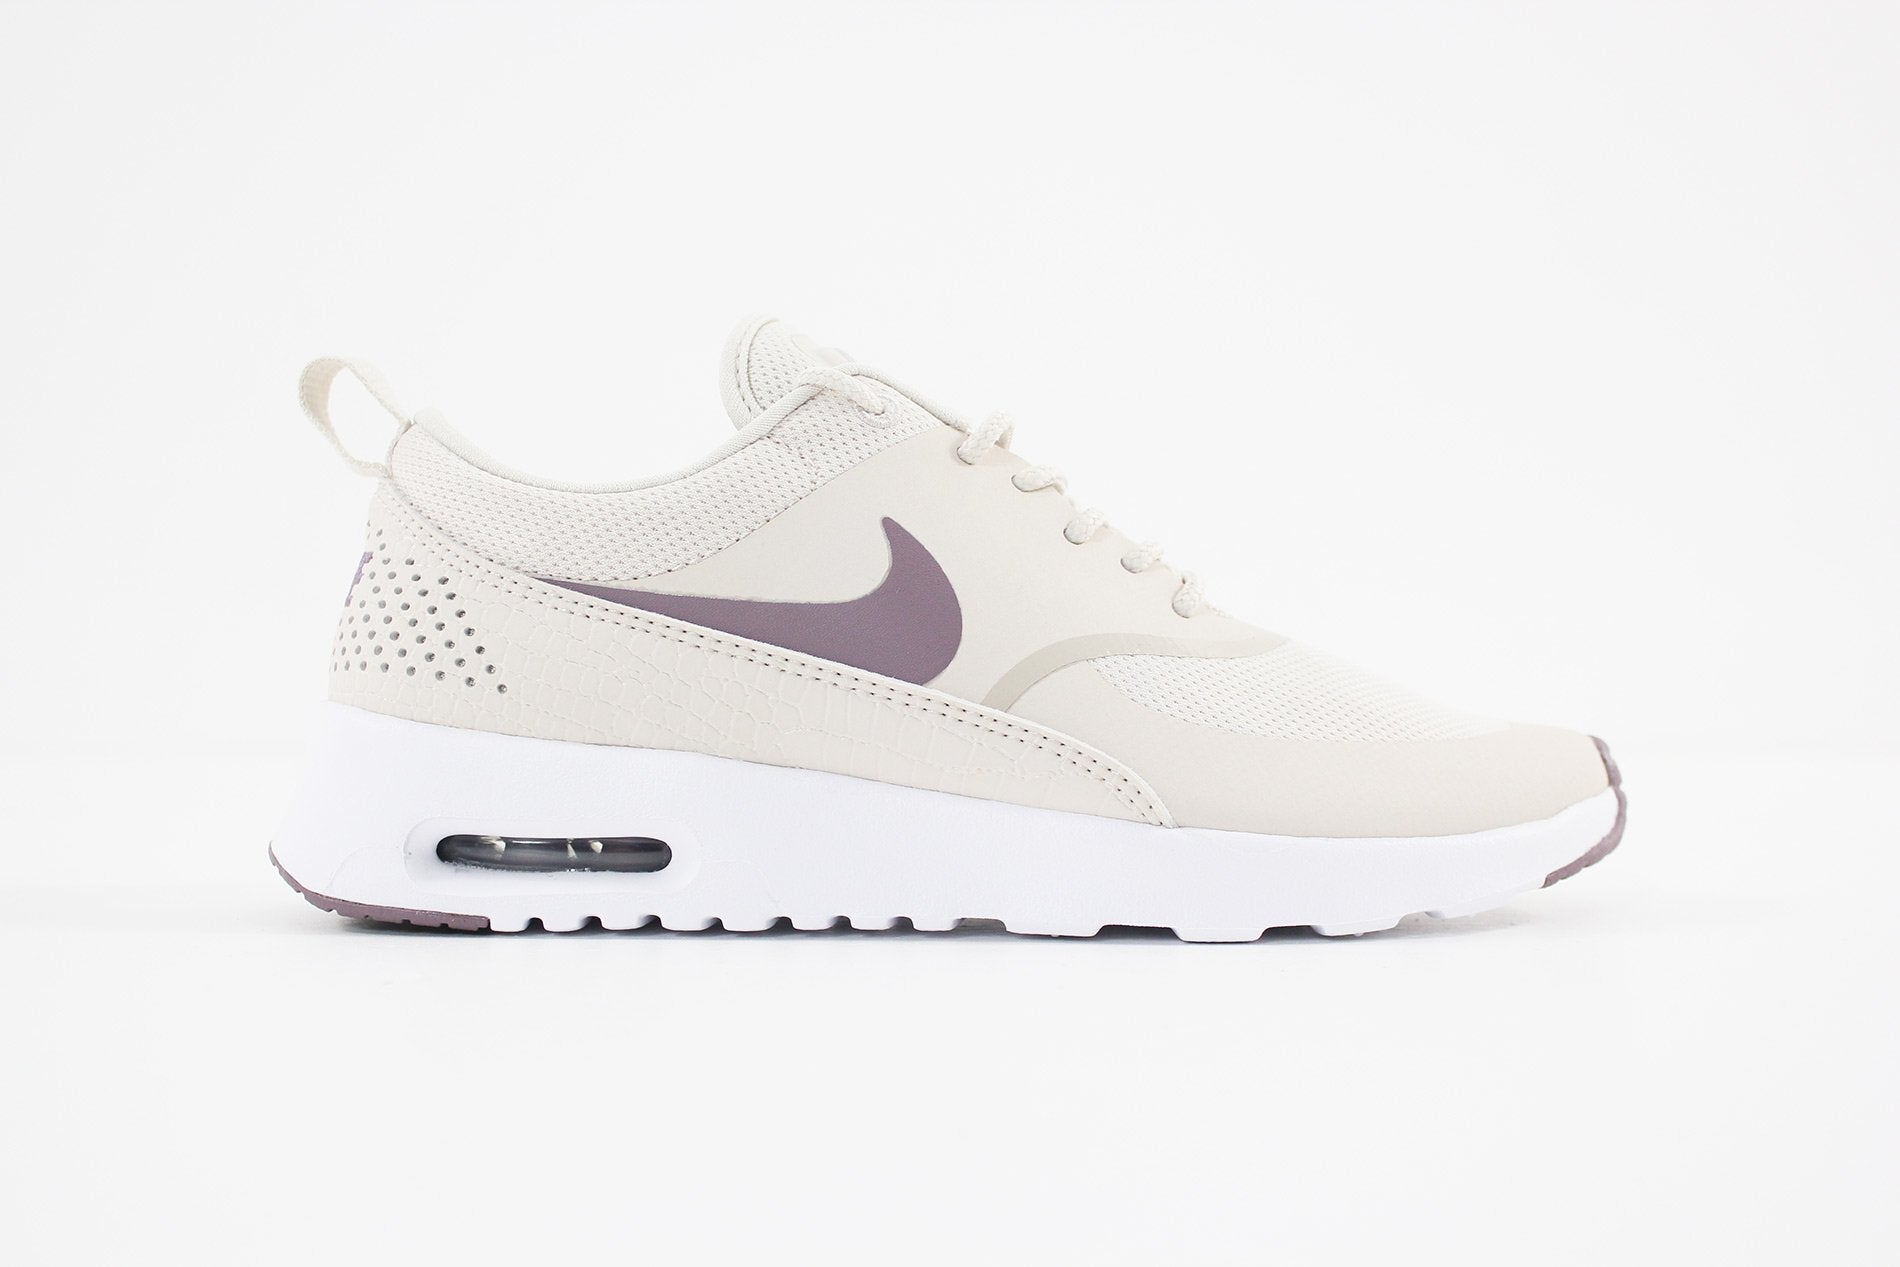 finest selection 8624c ec445 Nike - Womens Air Max Thea Shoe LT OREWOOD (BRNTAUPE GREY) 599409. Nike - Womens  Air Max Thea Shoe LT OREWOOD (BRNTAUPE GREY) 599409